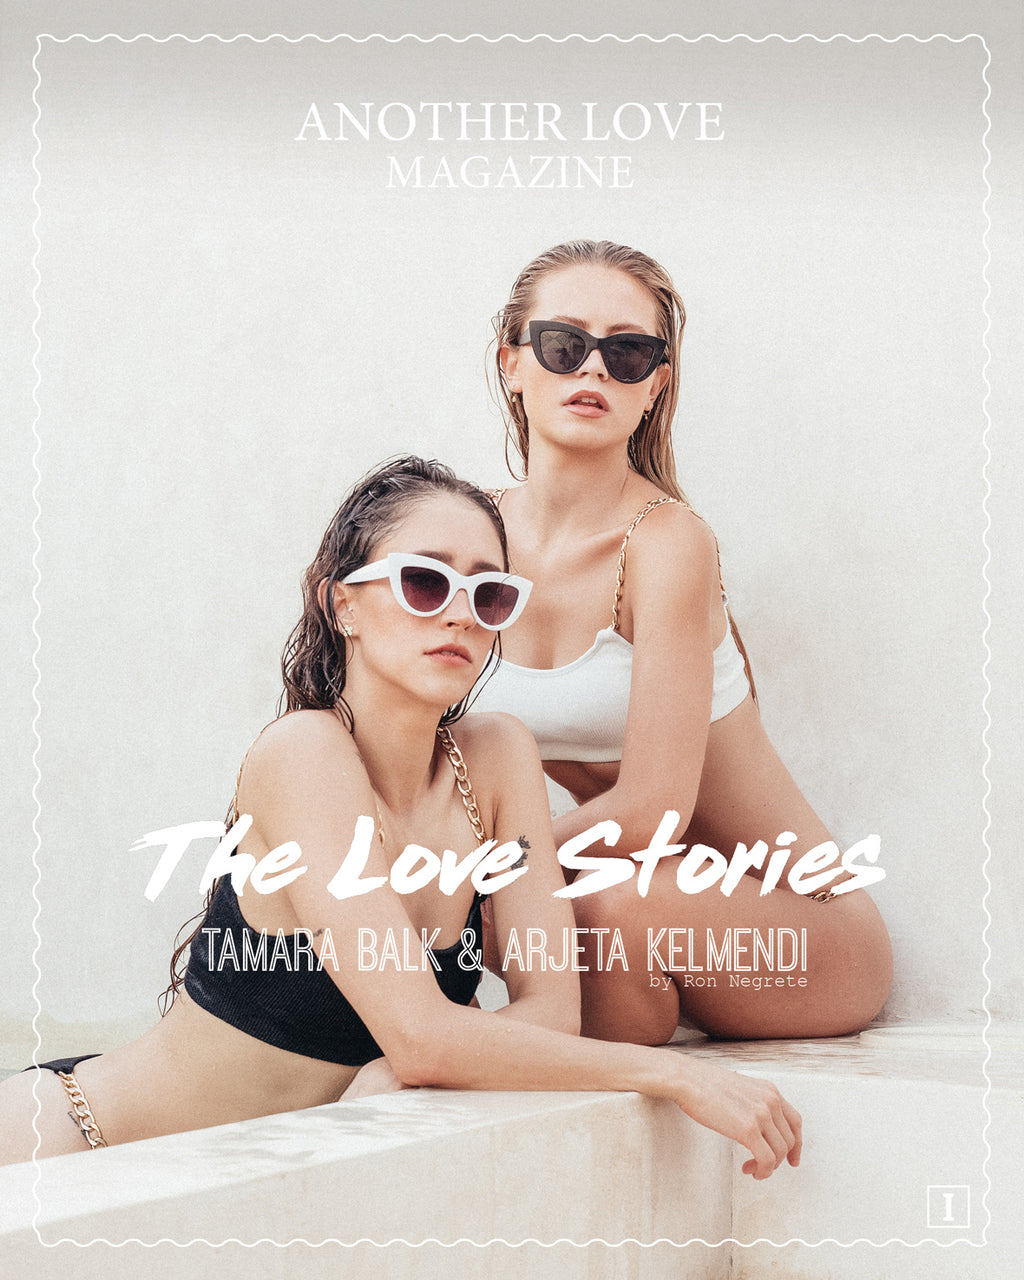 ALM The Love Stories - Tamara Balk & Arjeta Kelmendi I